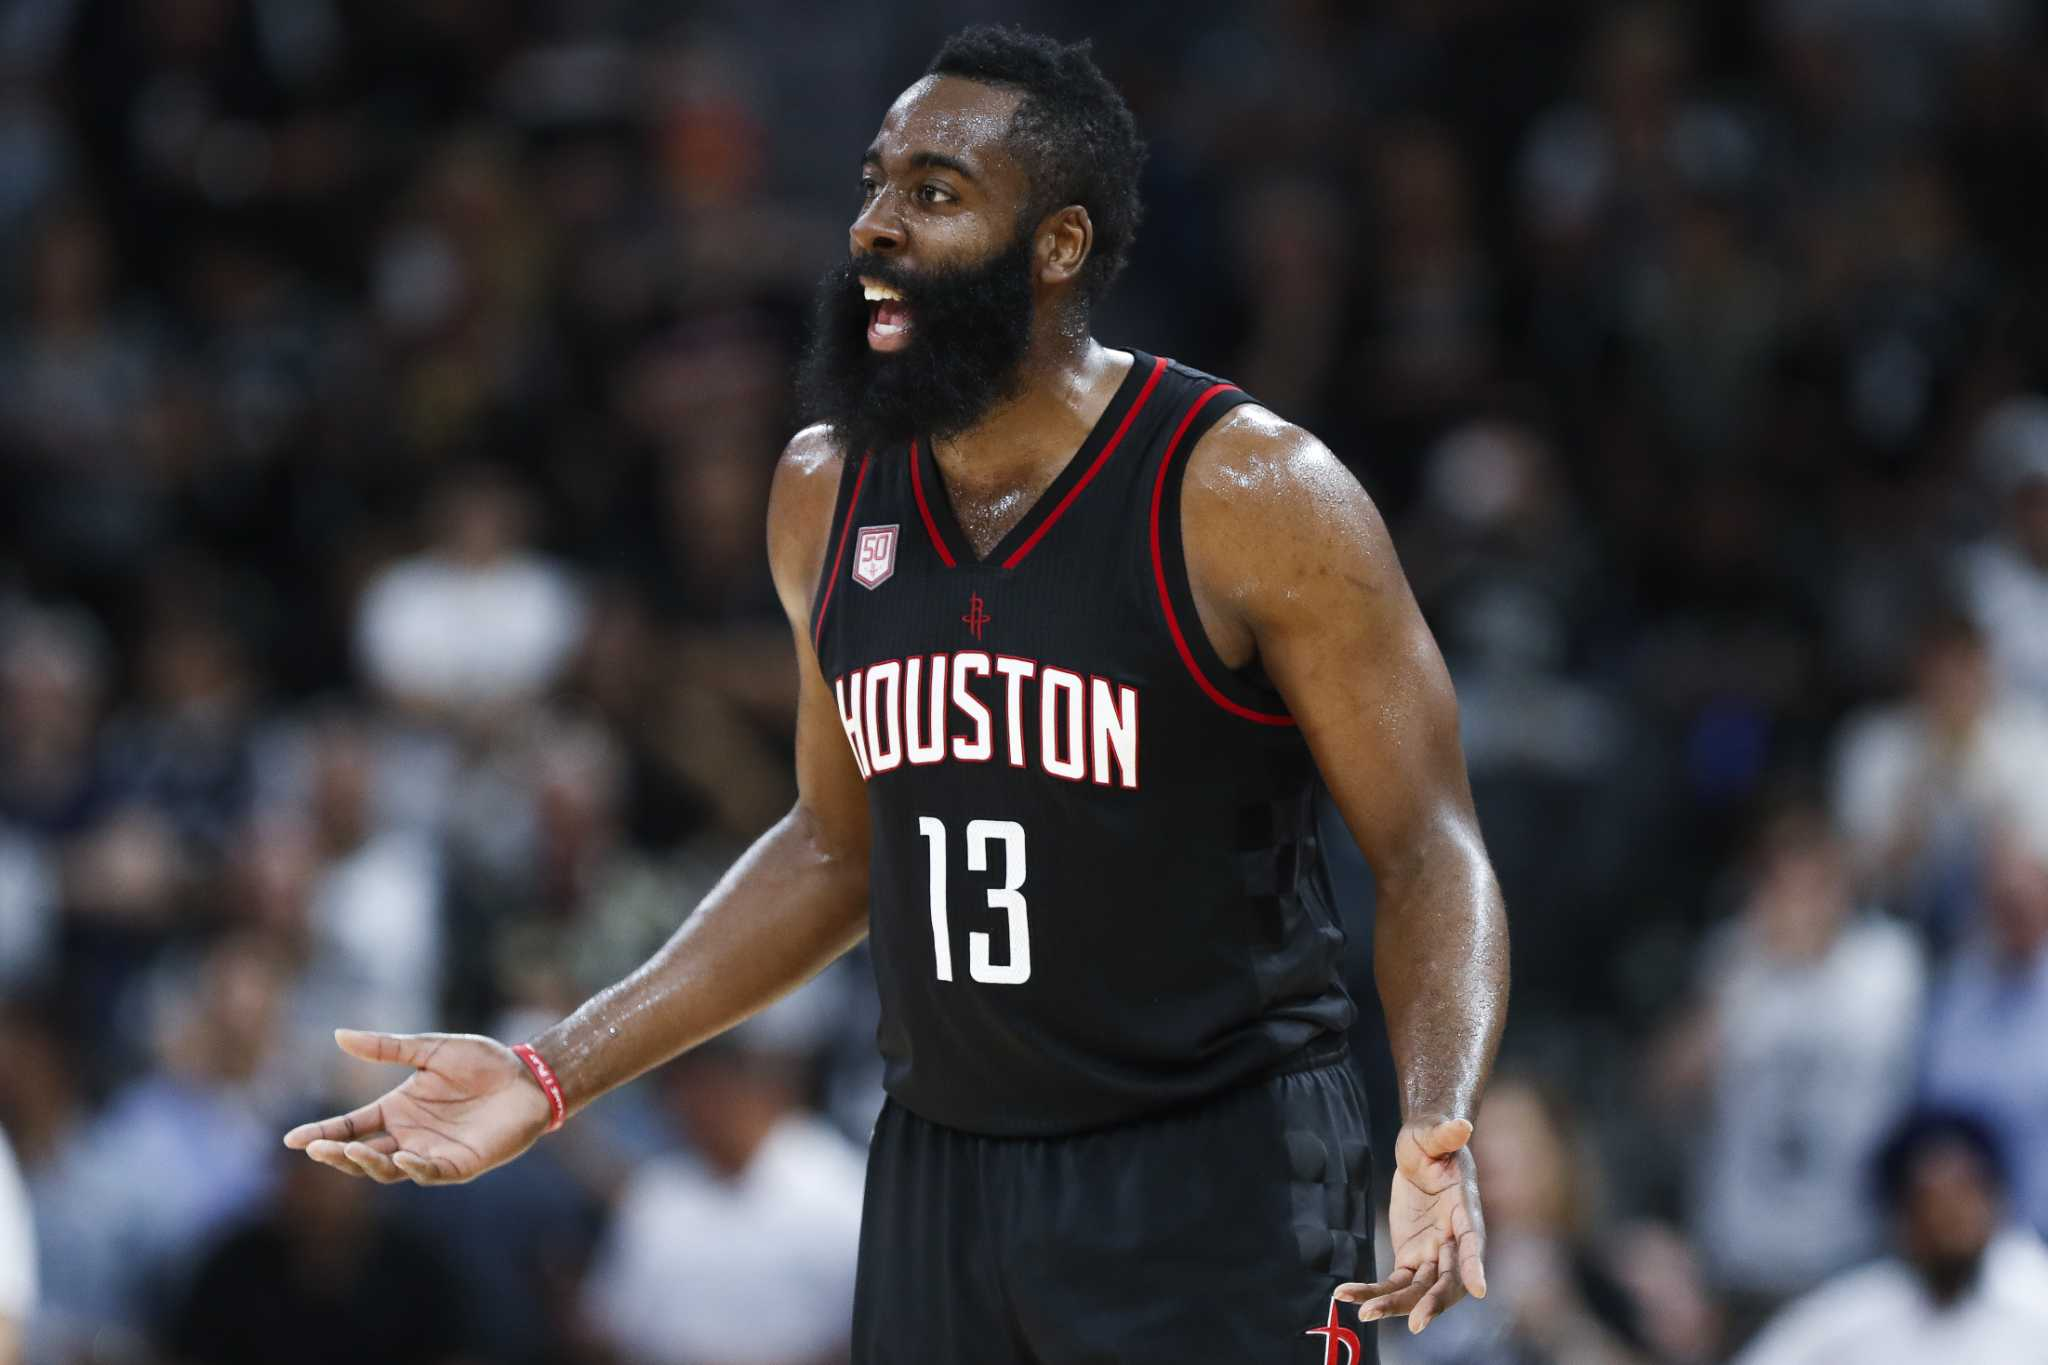 dfb959bc6c8a Moses Malone Jr. says Harden paid  20